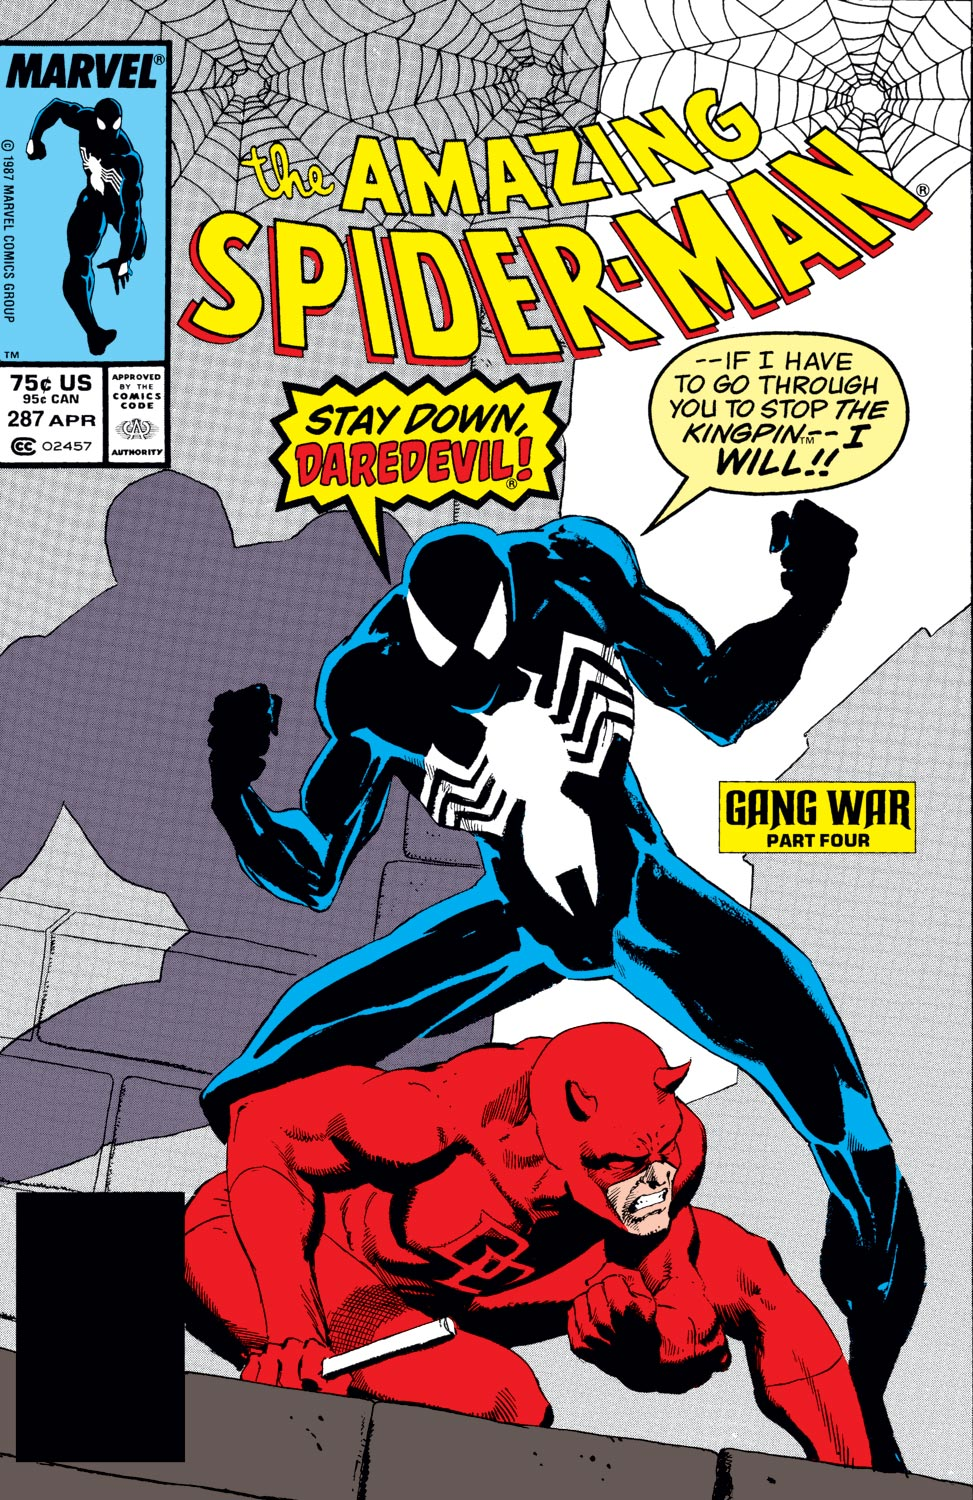 The Amazing Spider-Man (1963) #287